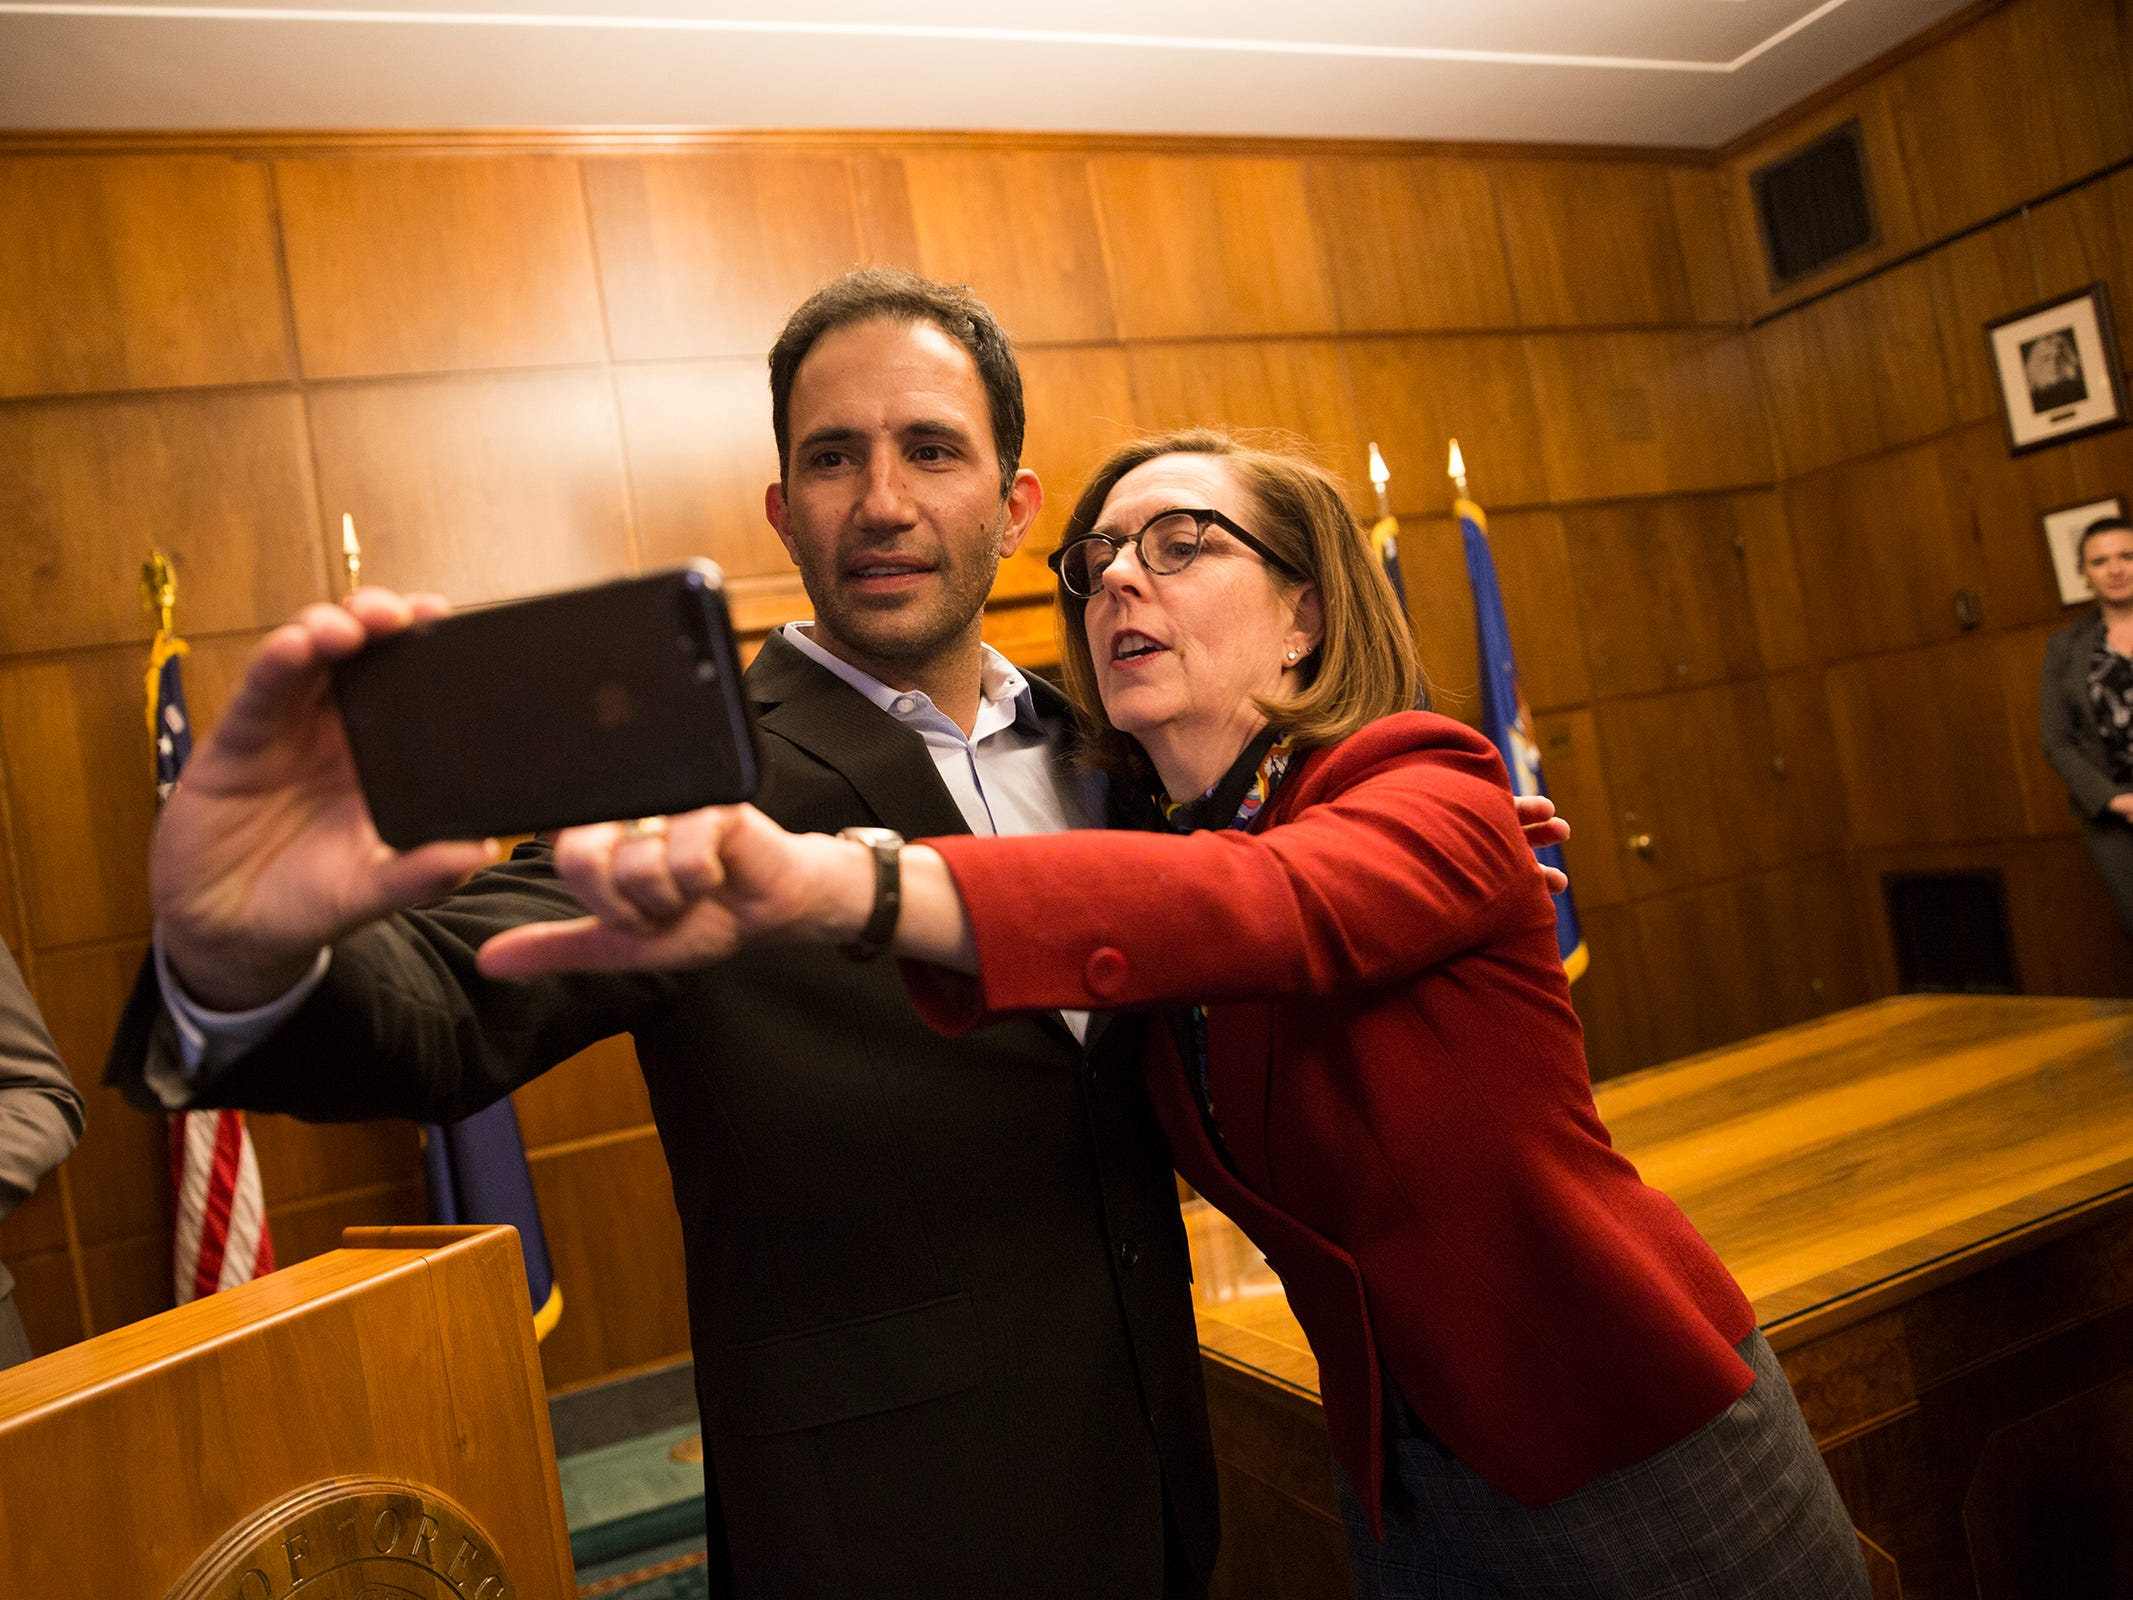 Juan Pablo ÒJPÓ Valot, head winemaker for Silvan Ridge Winery, takes a selfie with Gov. Kate Brown at a release party for the Oregon Solidarity Rose of Pinot Noir in the Governor's ceremonial office at the Oregon State Capitol in Salem on Tuesday, March 5, 2019.